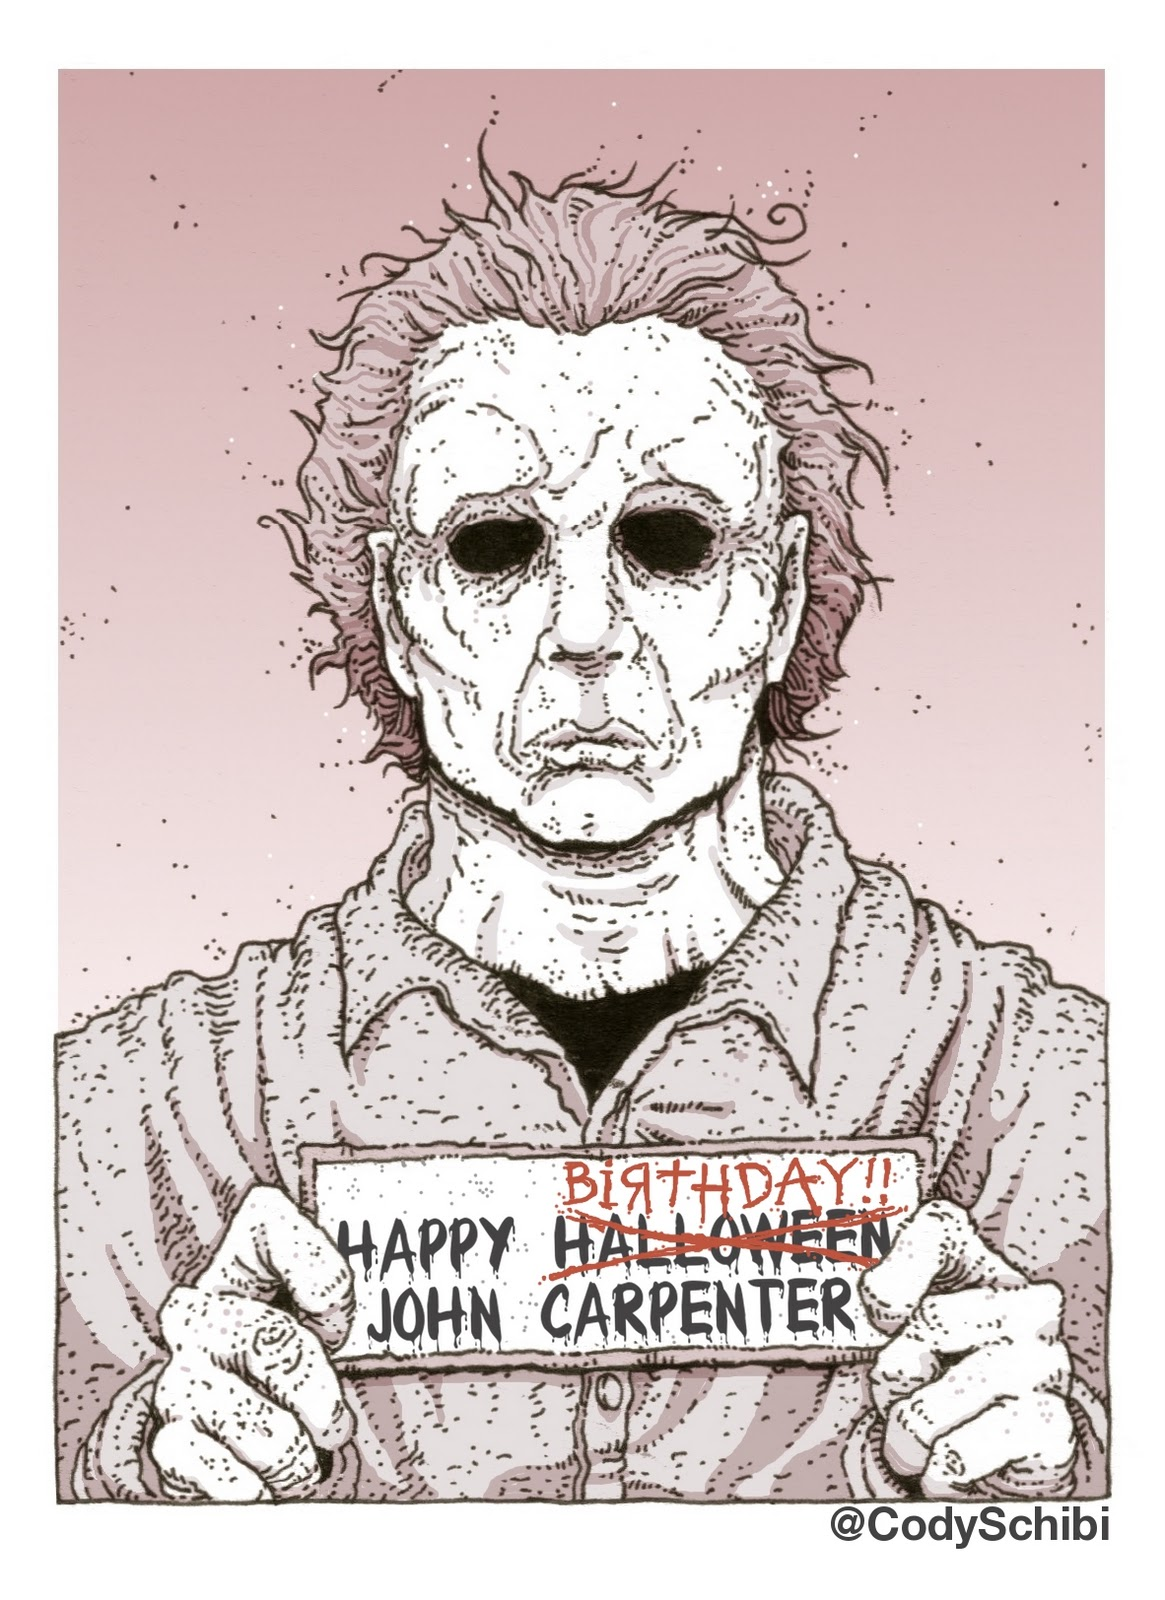 birthday drawing ideas ; cody+schibi+michael+myers+john+carpenter+halloween+birthday